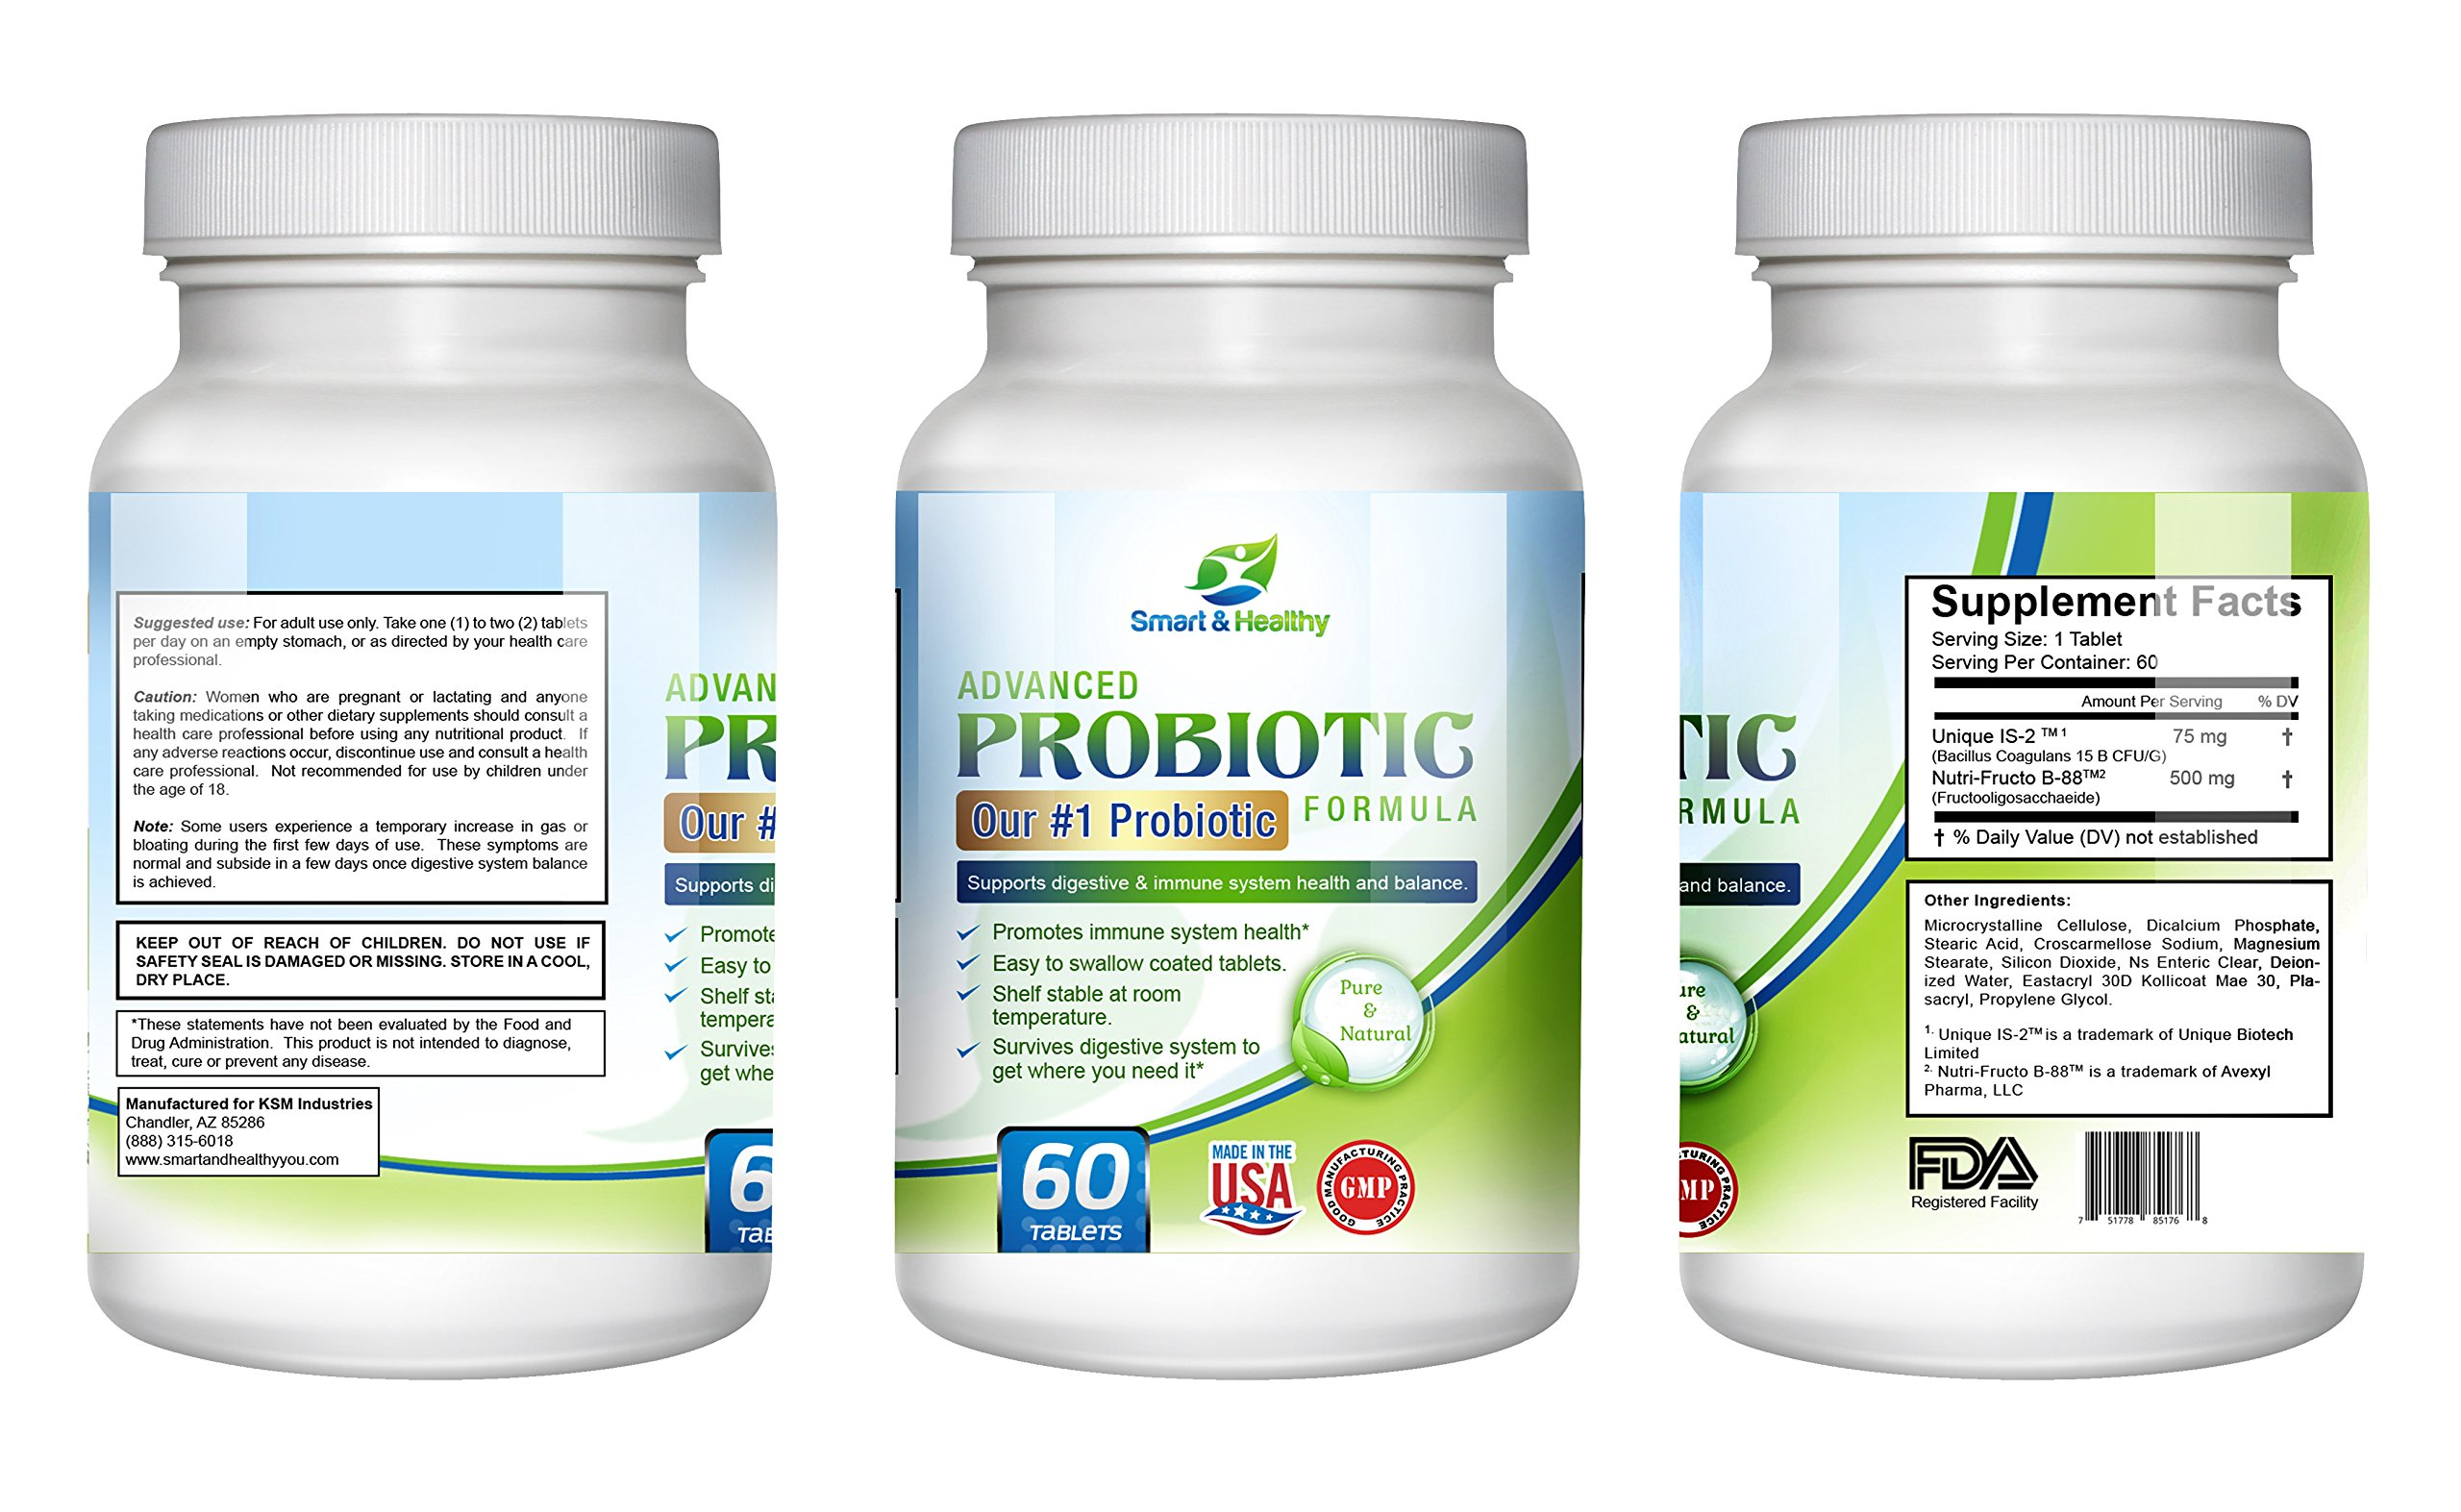 Smart & Healthy Advanced Probiotic. 60 day supply of our best selling formula. Shelf stable. Survives digestive system. Easy to swallow. Patented probiotic and prebiotic in one. by Smart and Healthy (Image #2)